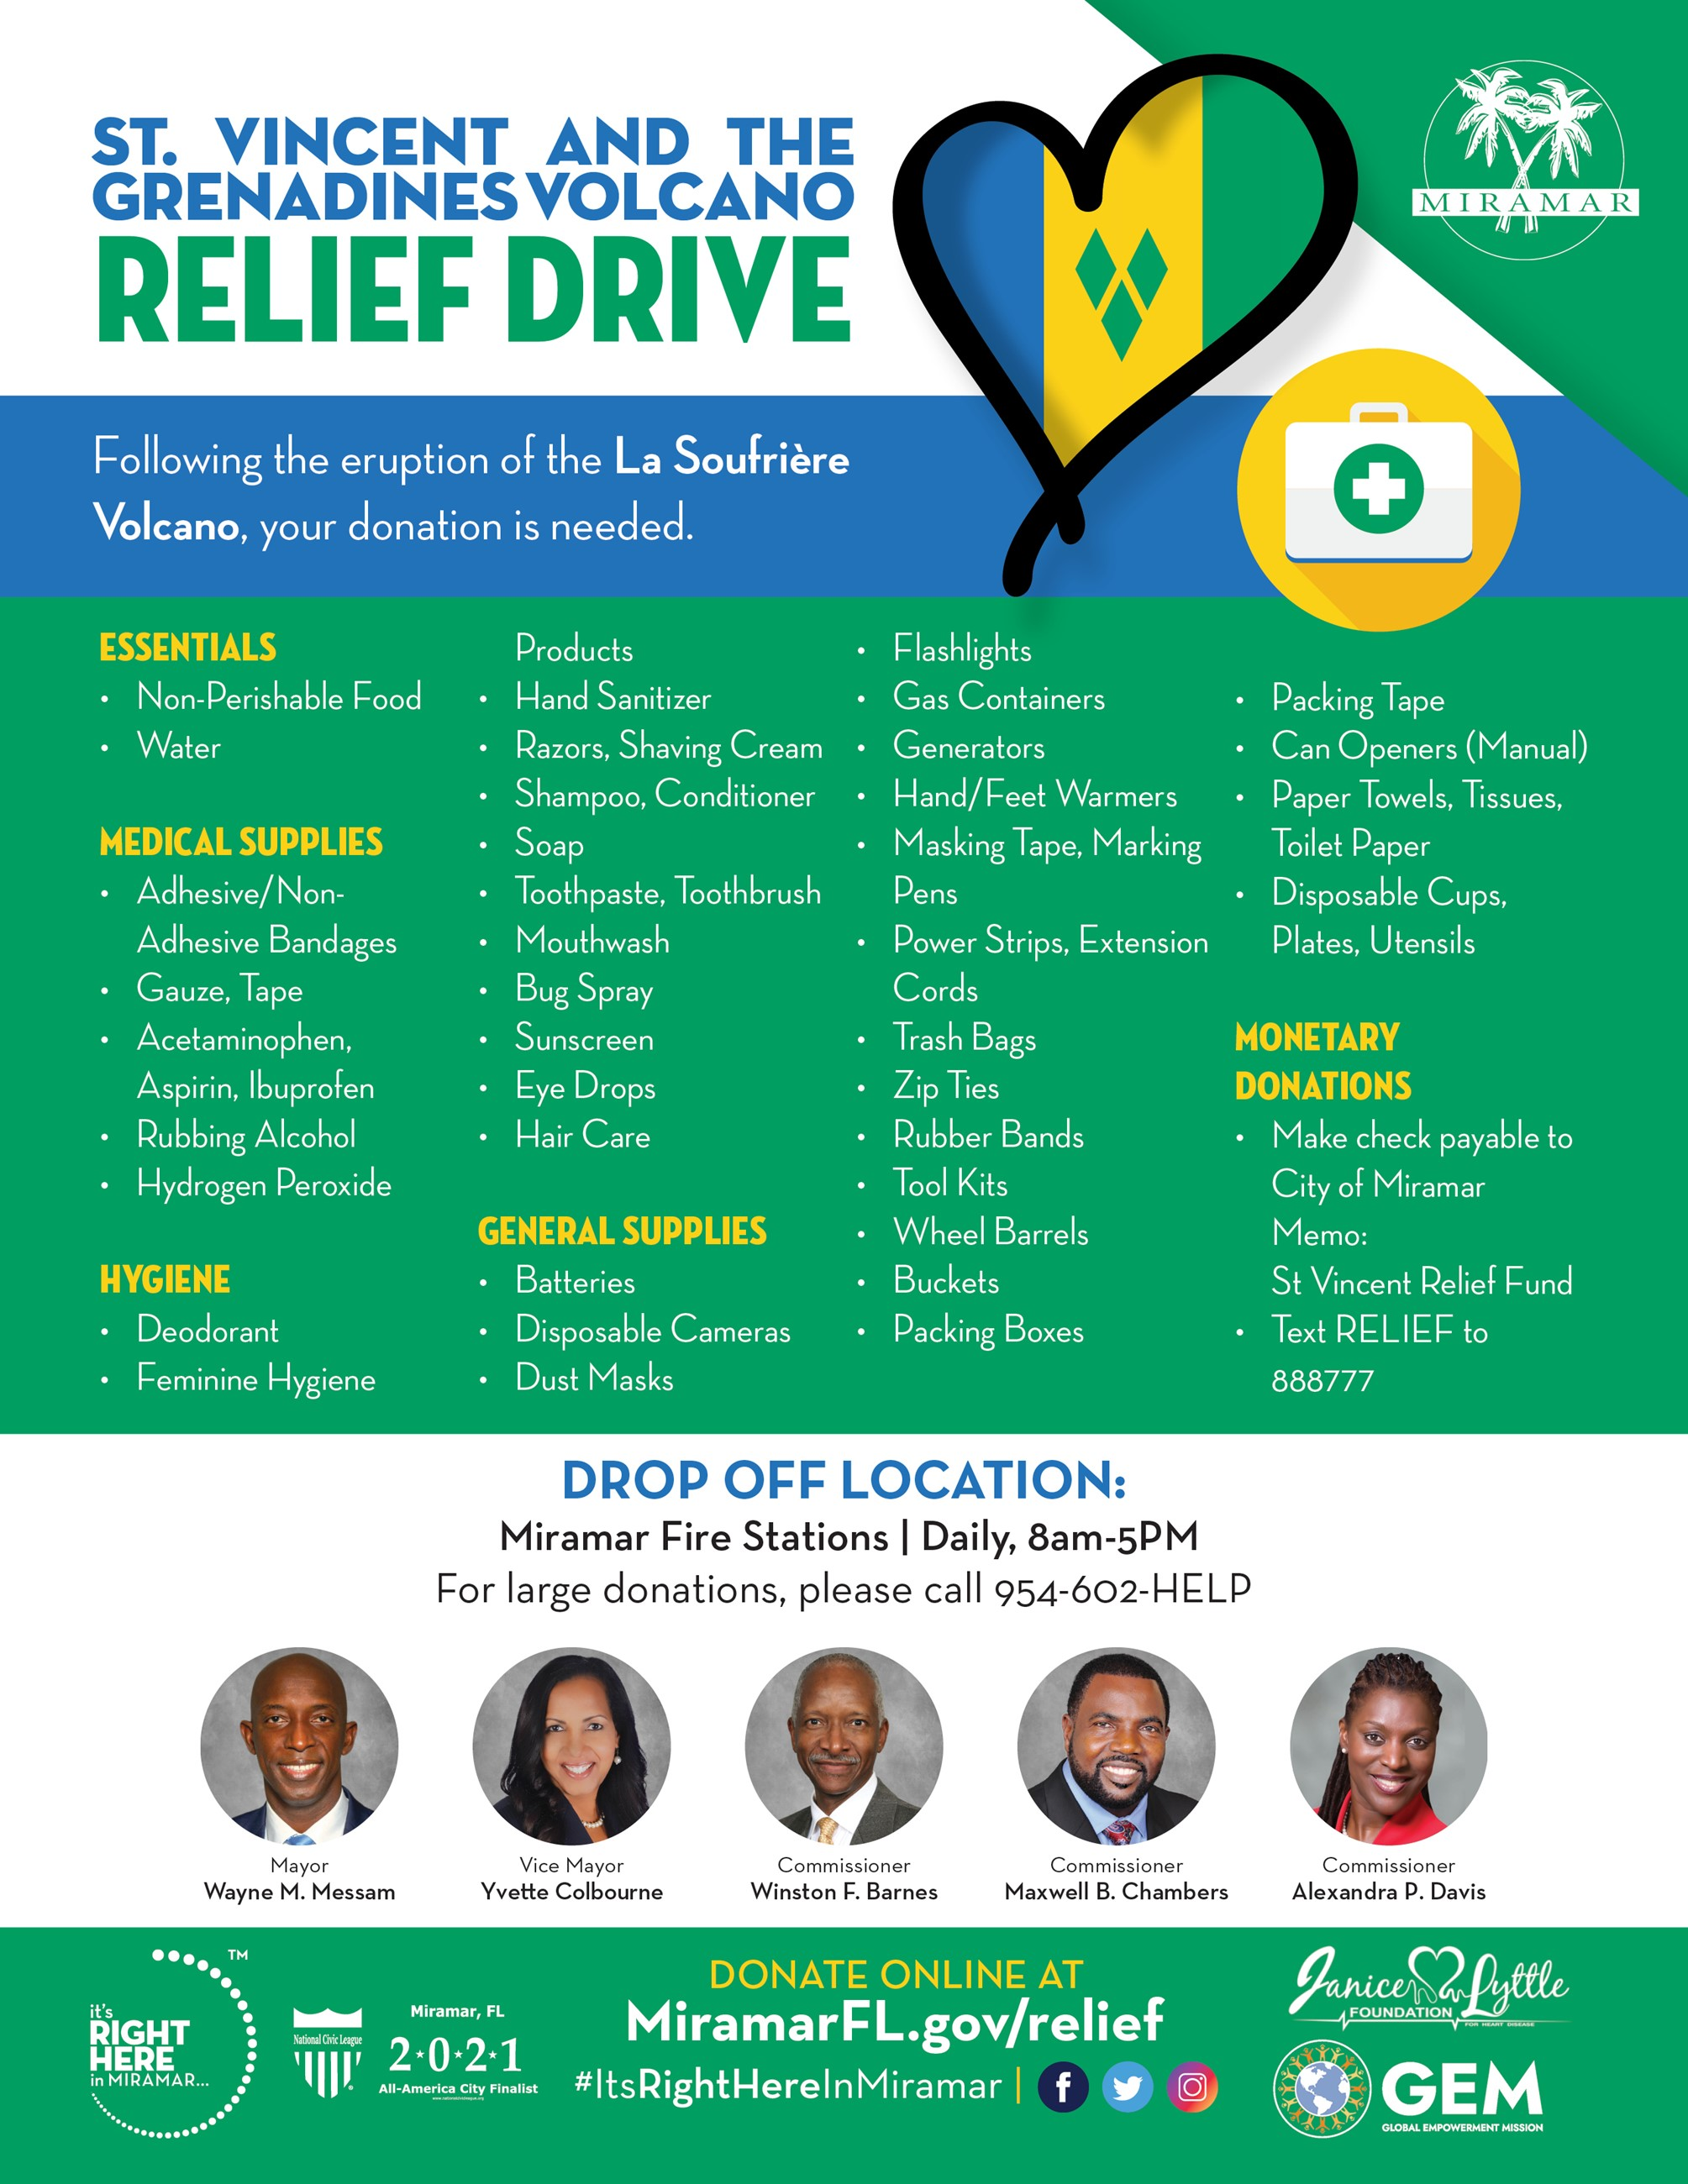 St Vincent and the Grenadines Volcano Relief Drive